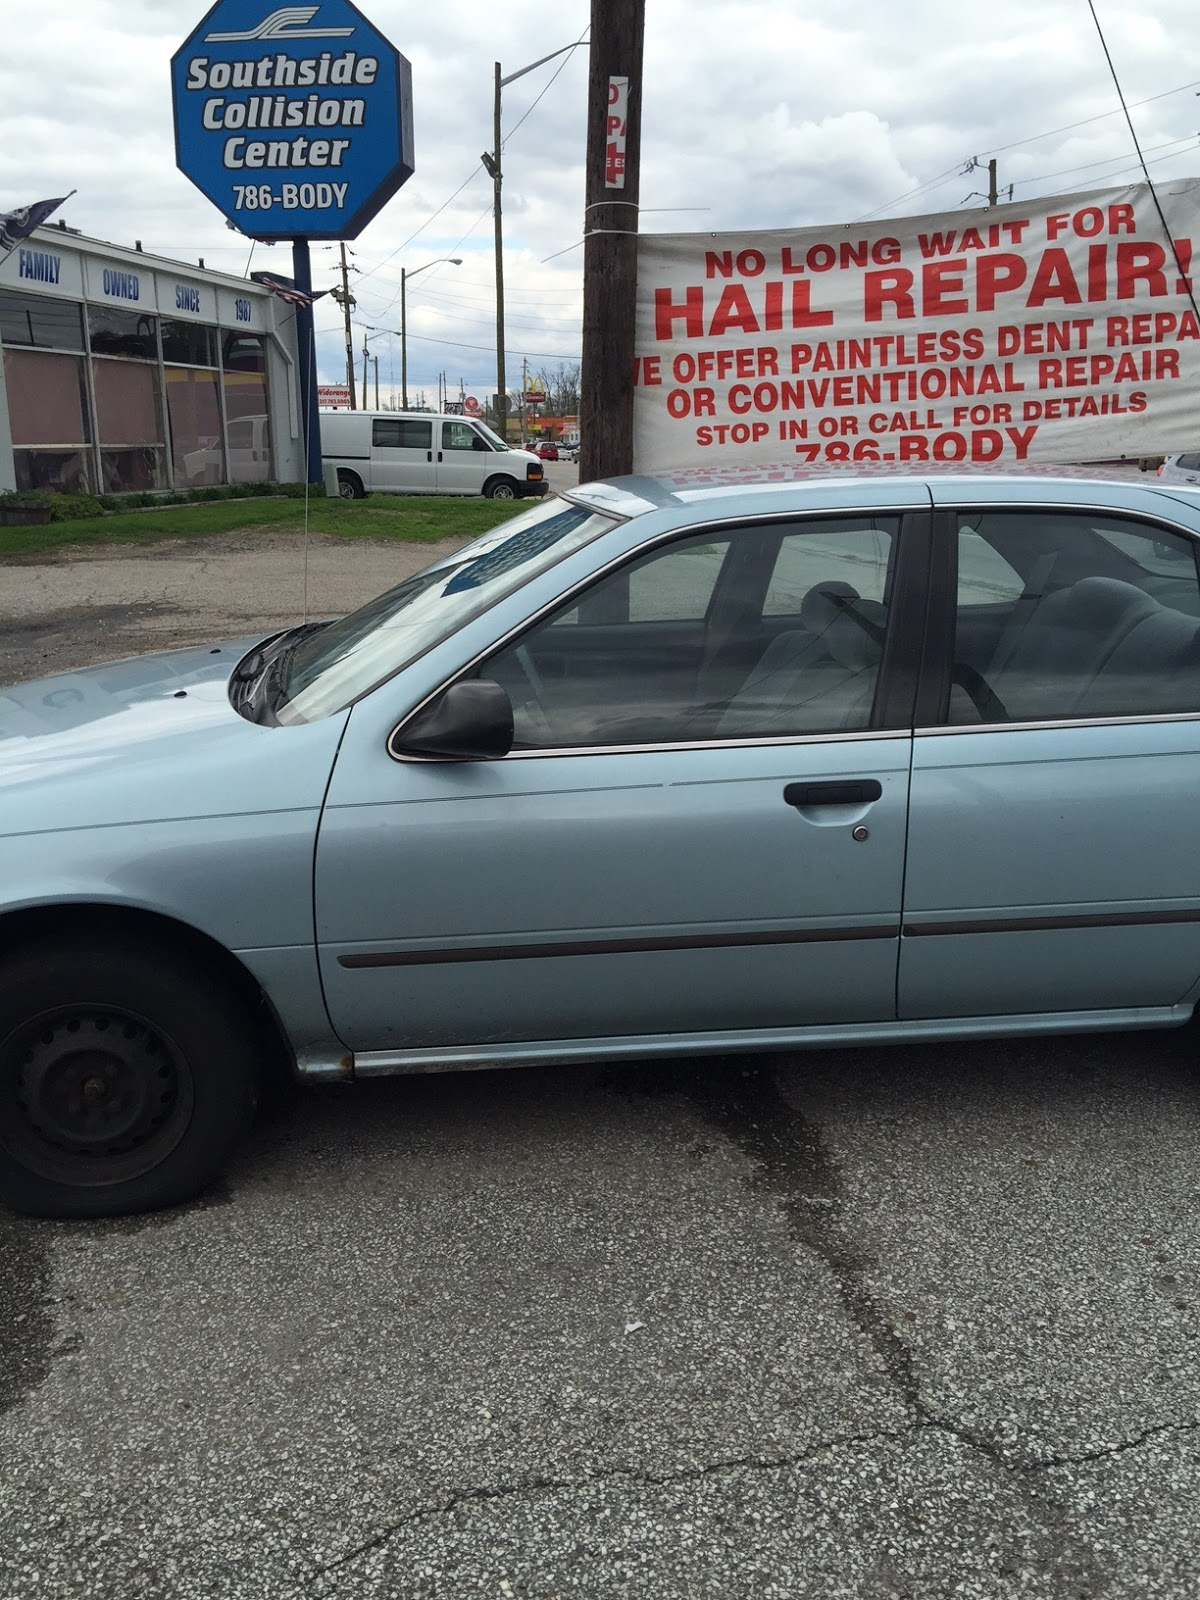 Junk Cars Indianapolis: We buy more and more junk cars everyday!